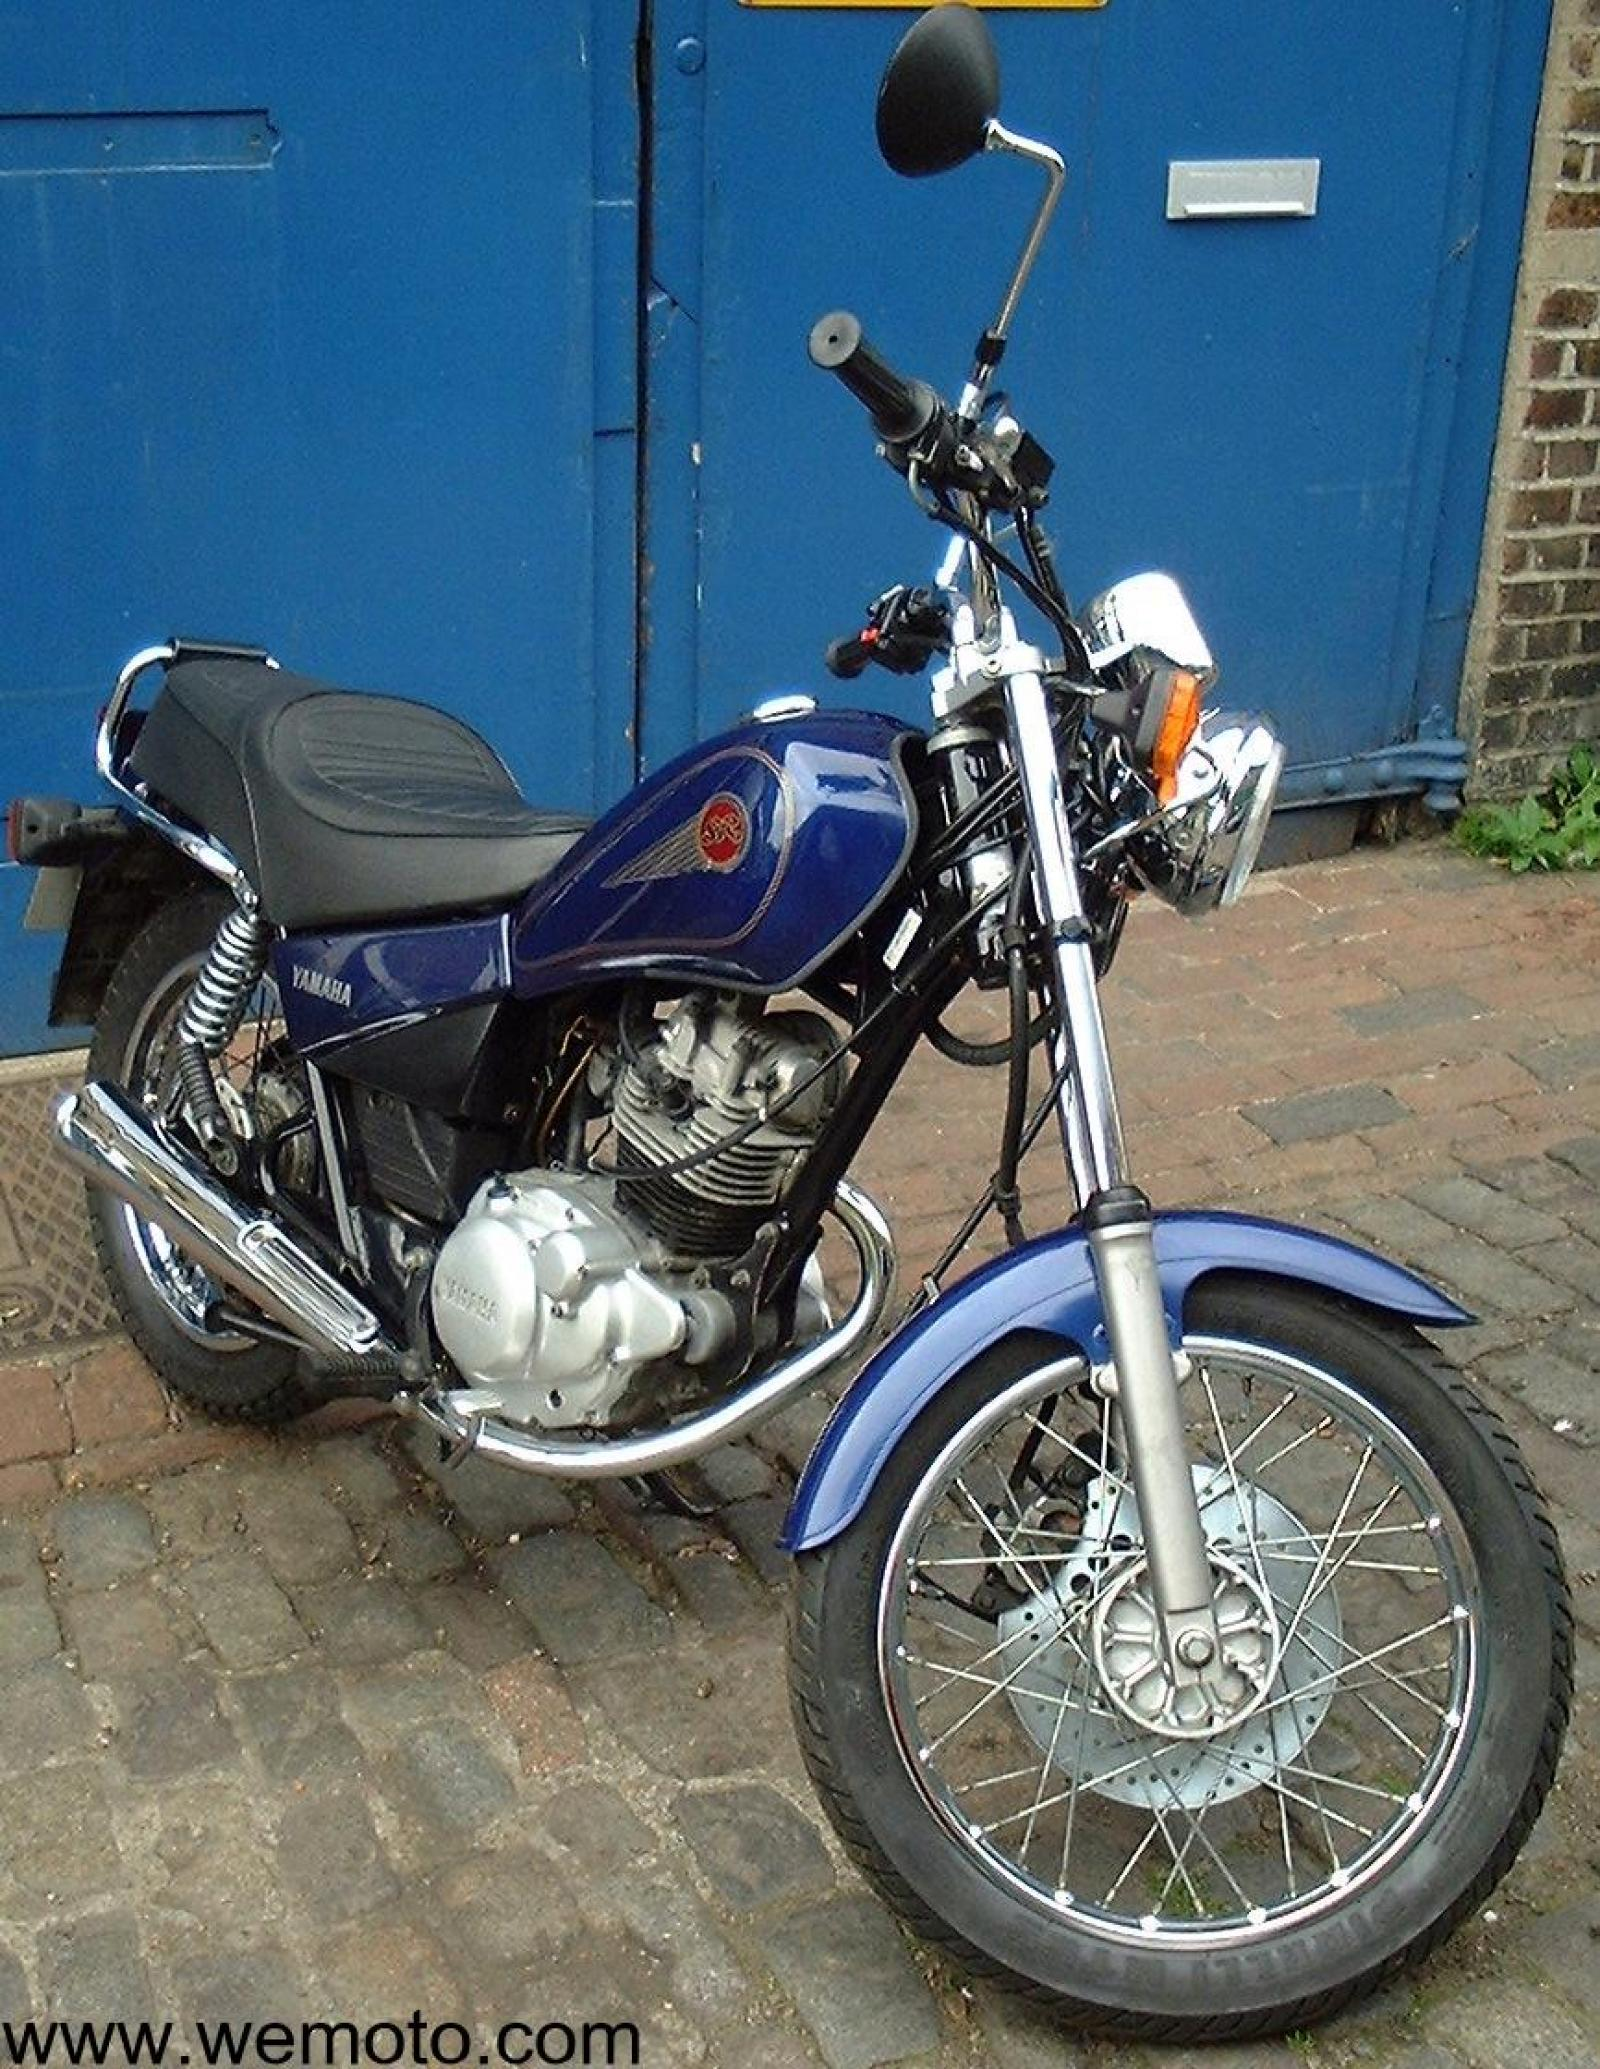 1985 yamaha sr 125 pics specs and information. Black Bedroom Furniture Sets. Home Design Ideas